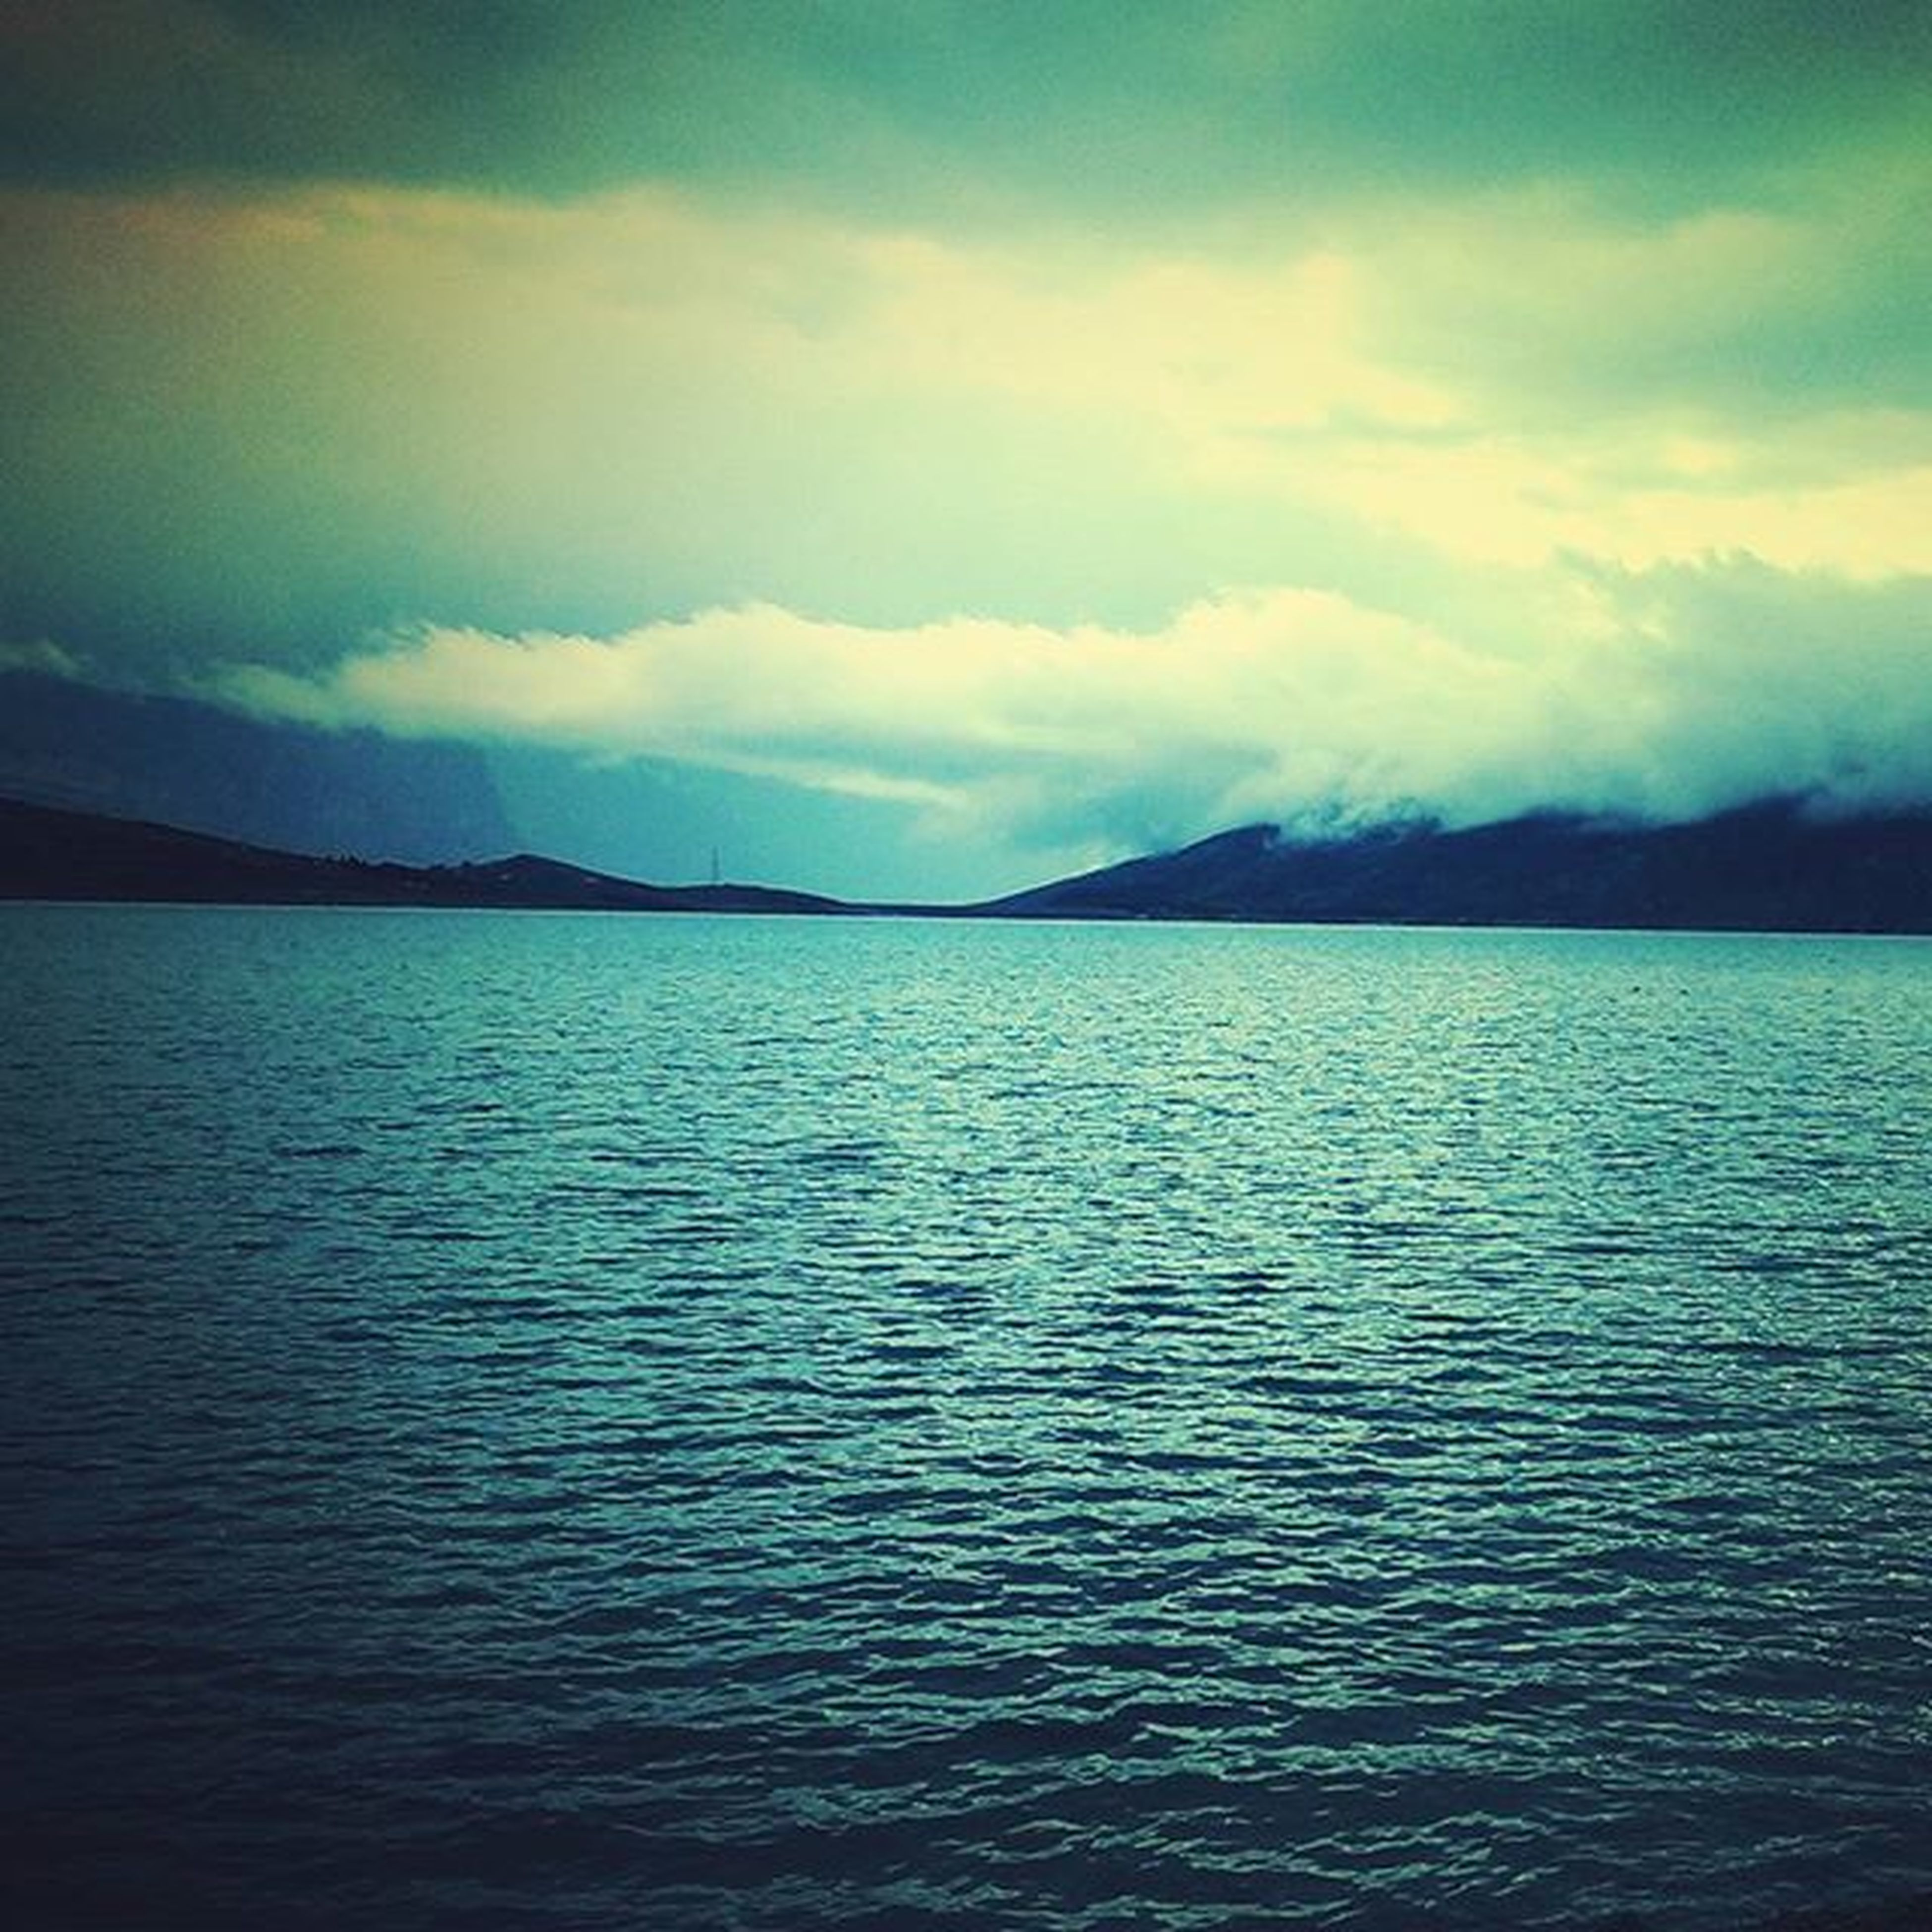 water, tranquil scene, sky, scenics, tranquility, waterfront, beauty in nature, mountain, cloud - sky, nature, cloudy, cloud, sea, lake, mountain range, rippled, idyllic, calm, dusk, outdoors